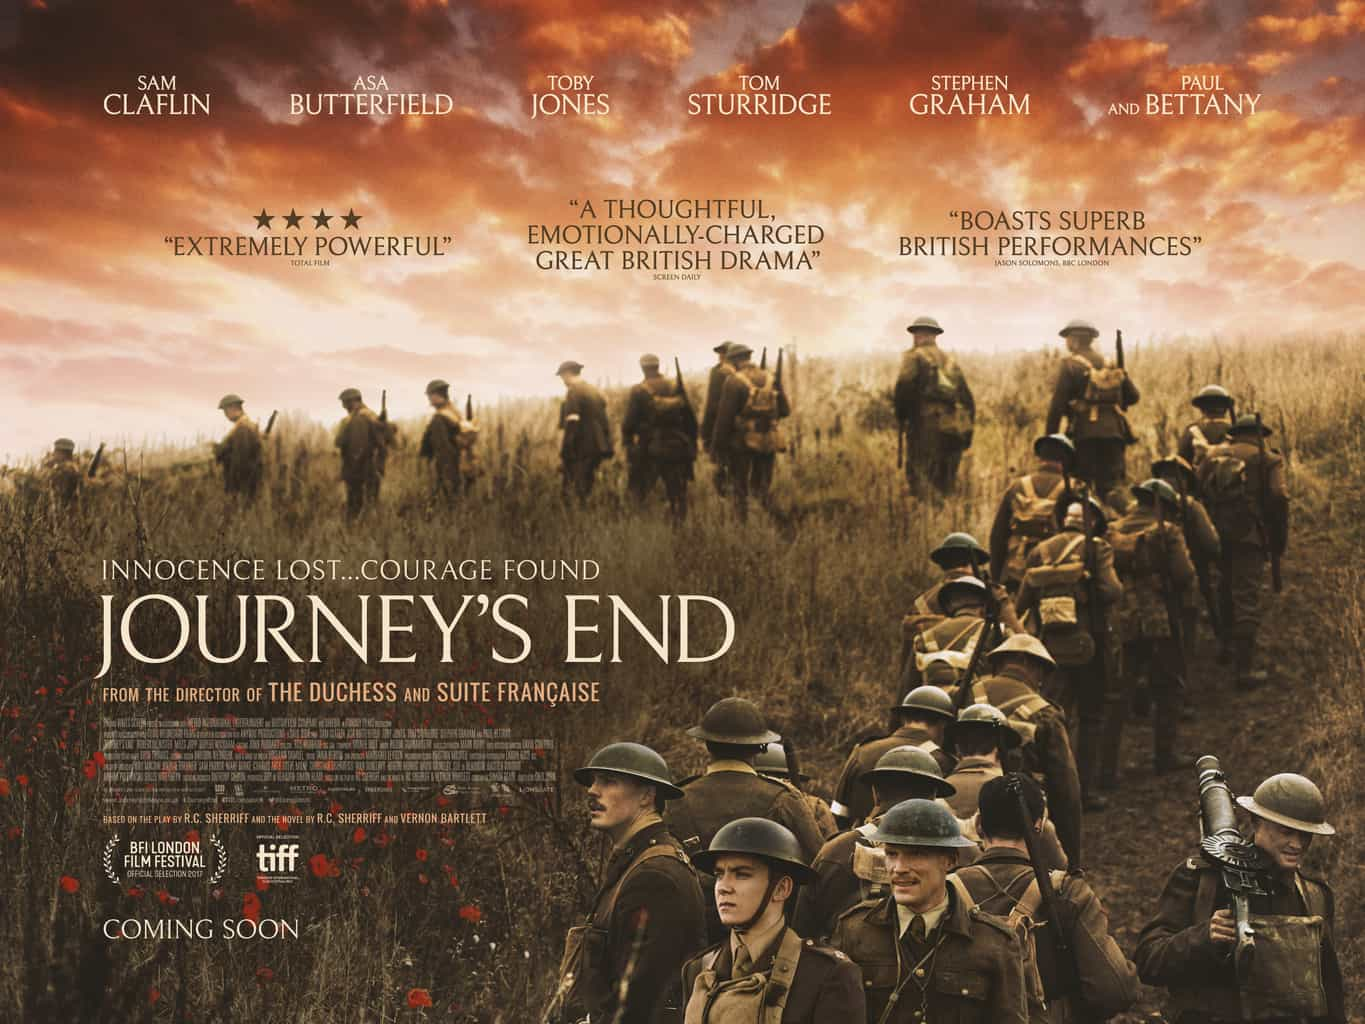 Journey's End | Brand New Artwork featuring Sam Claflin, Asa Butterfield and Paul Bettany